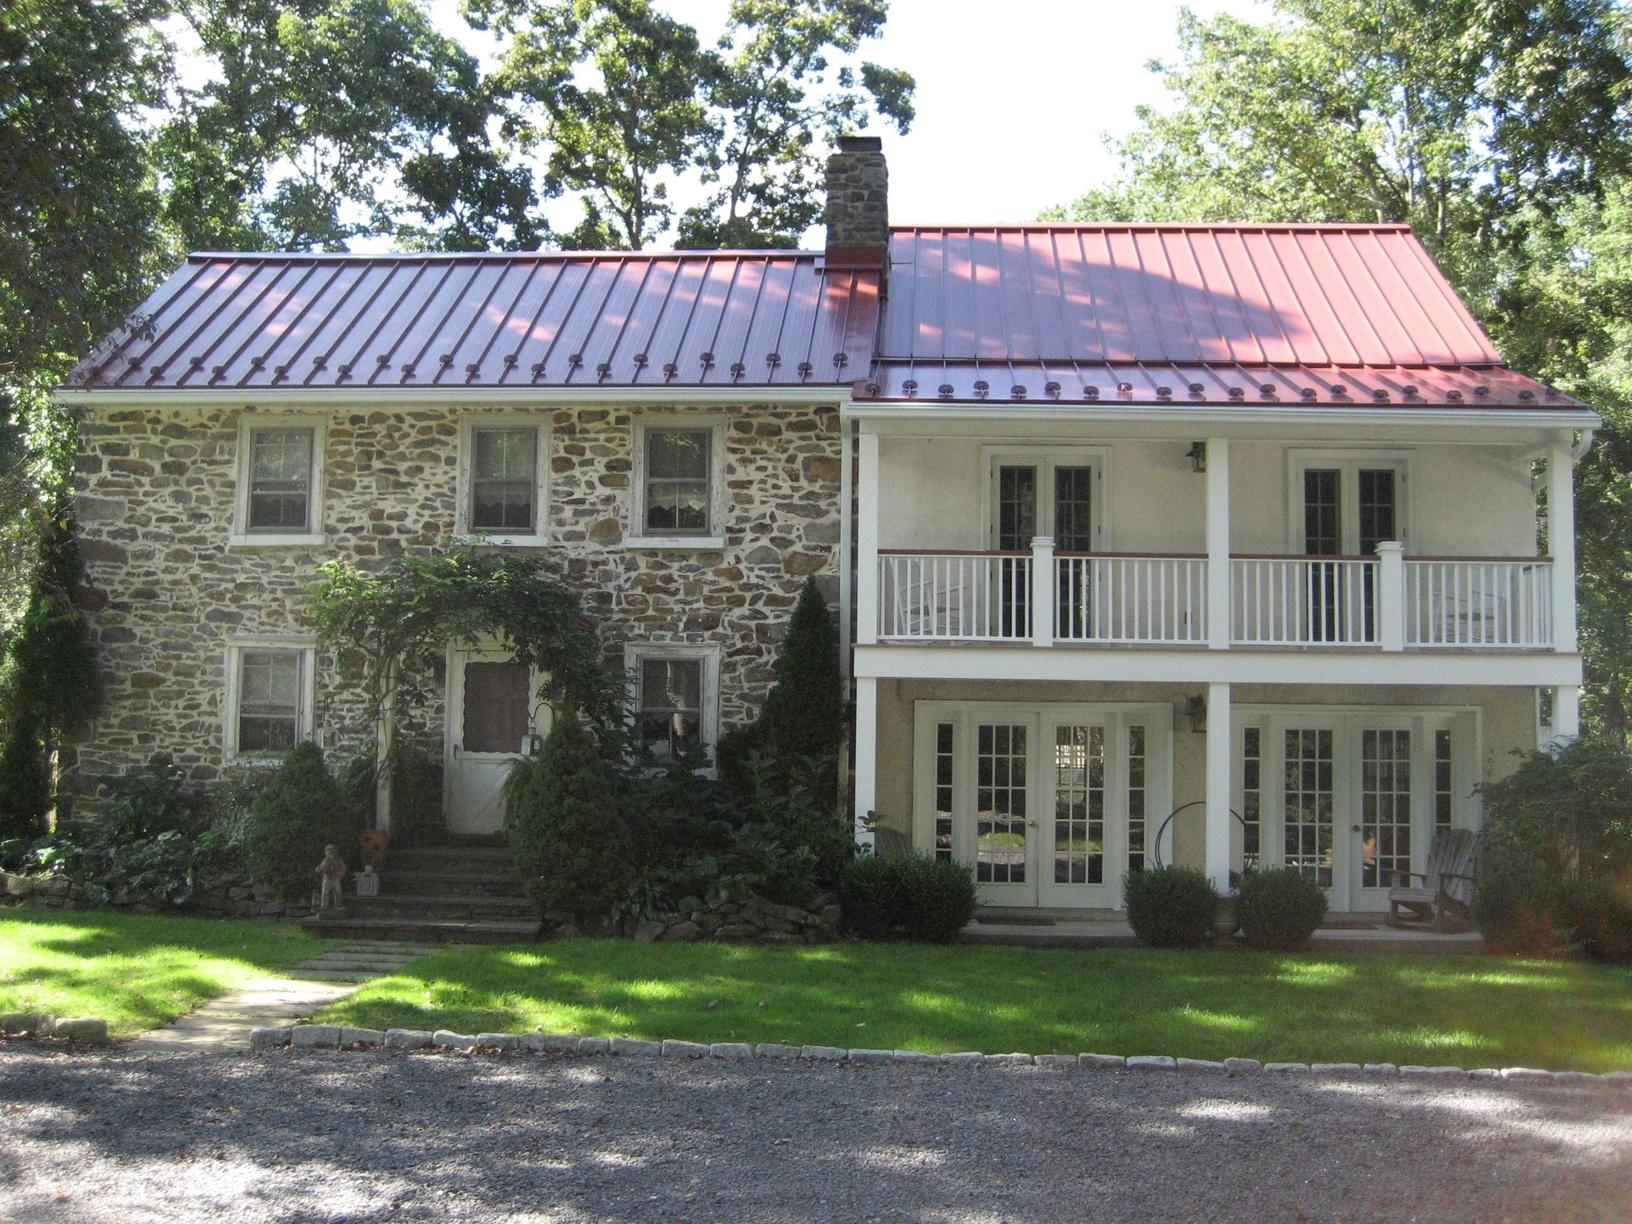 Metal Roof Replacement on Kintnersville, PA Historic Home - After Photo